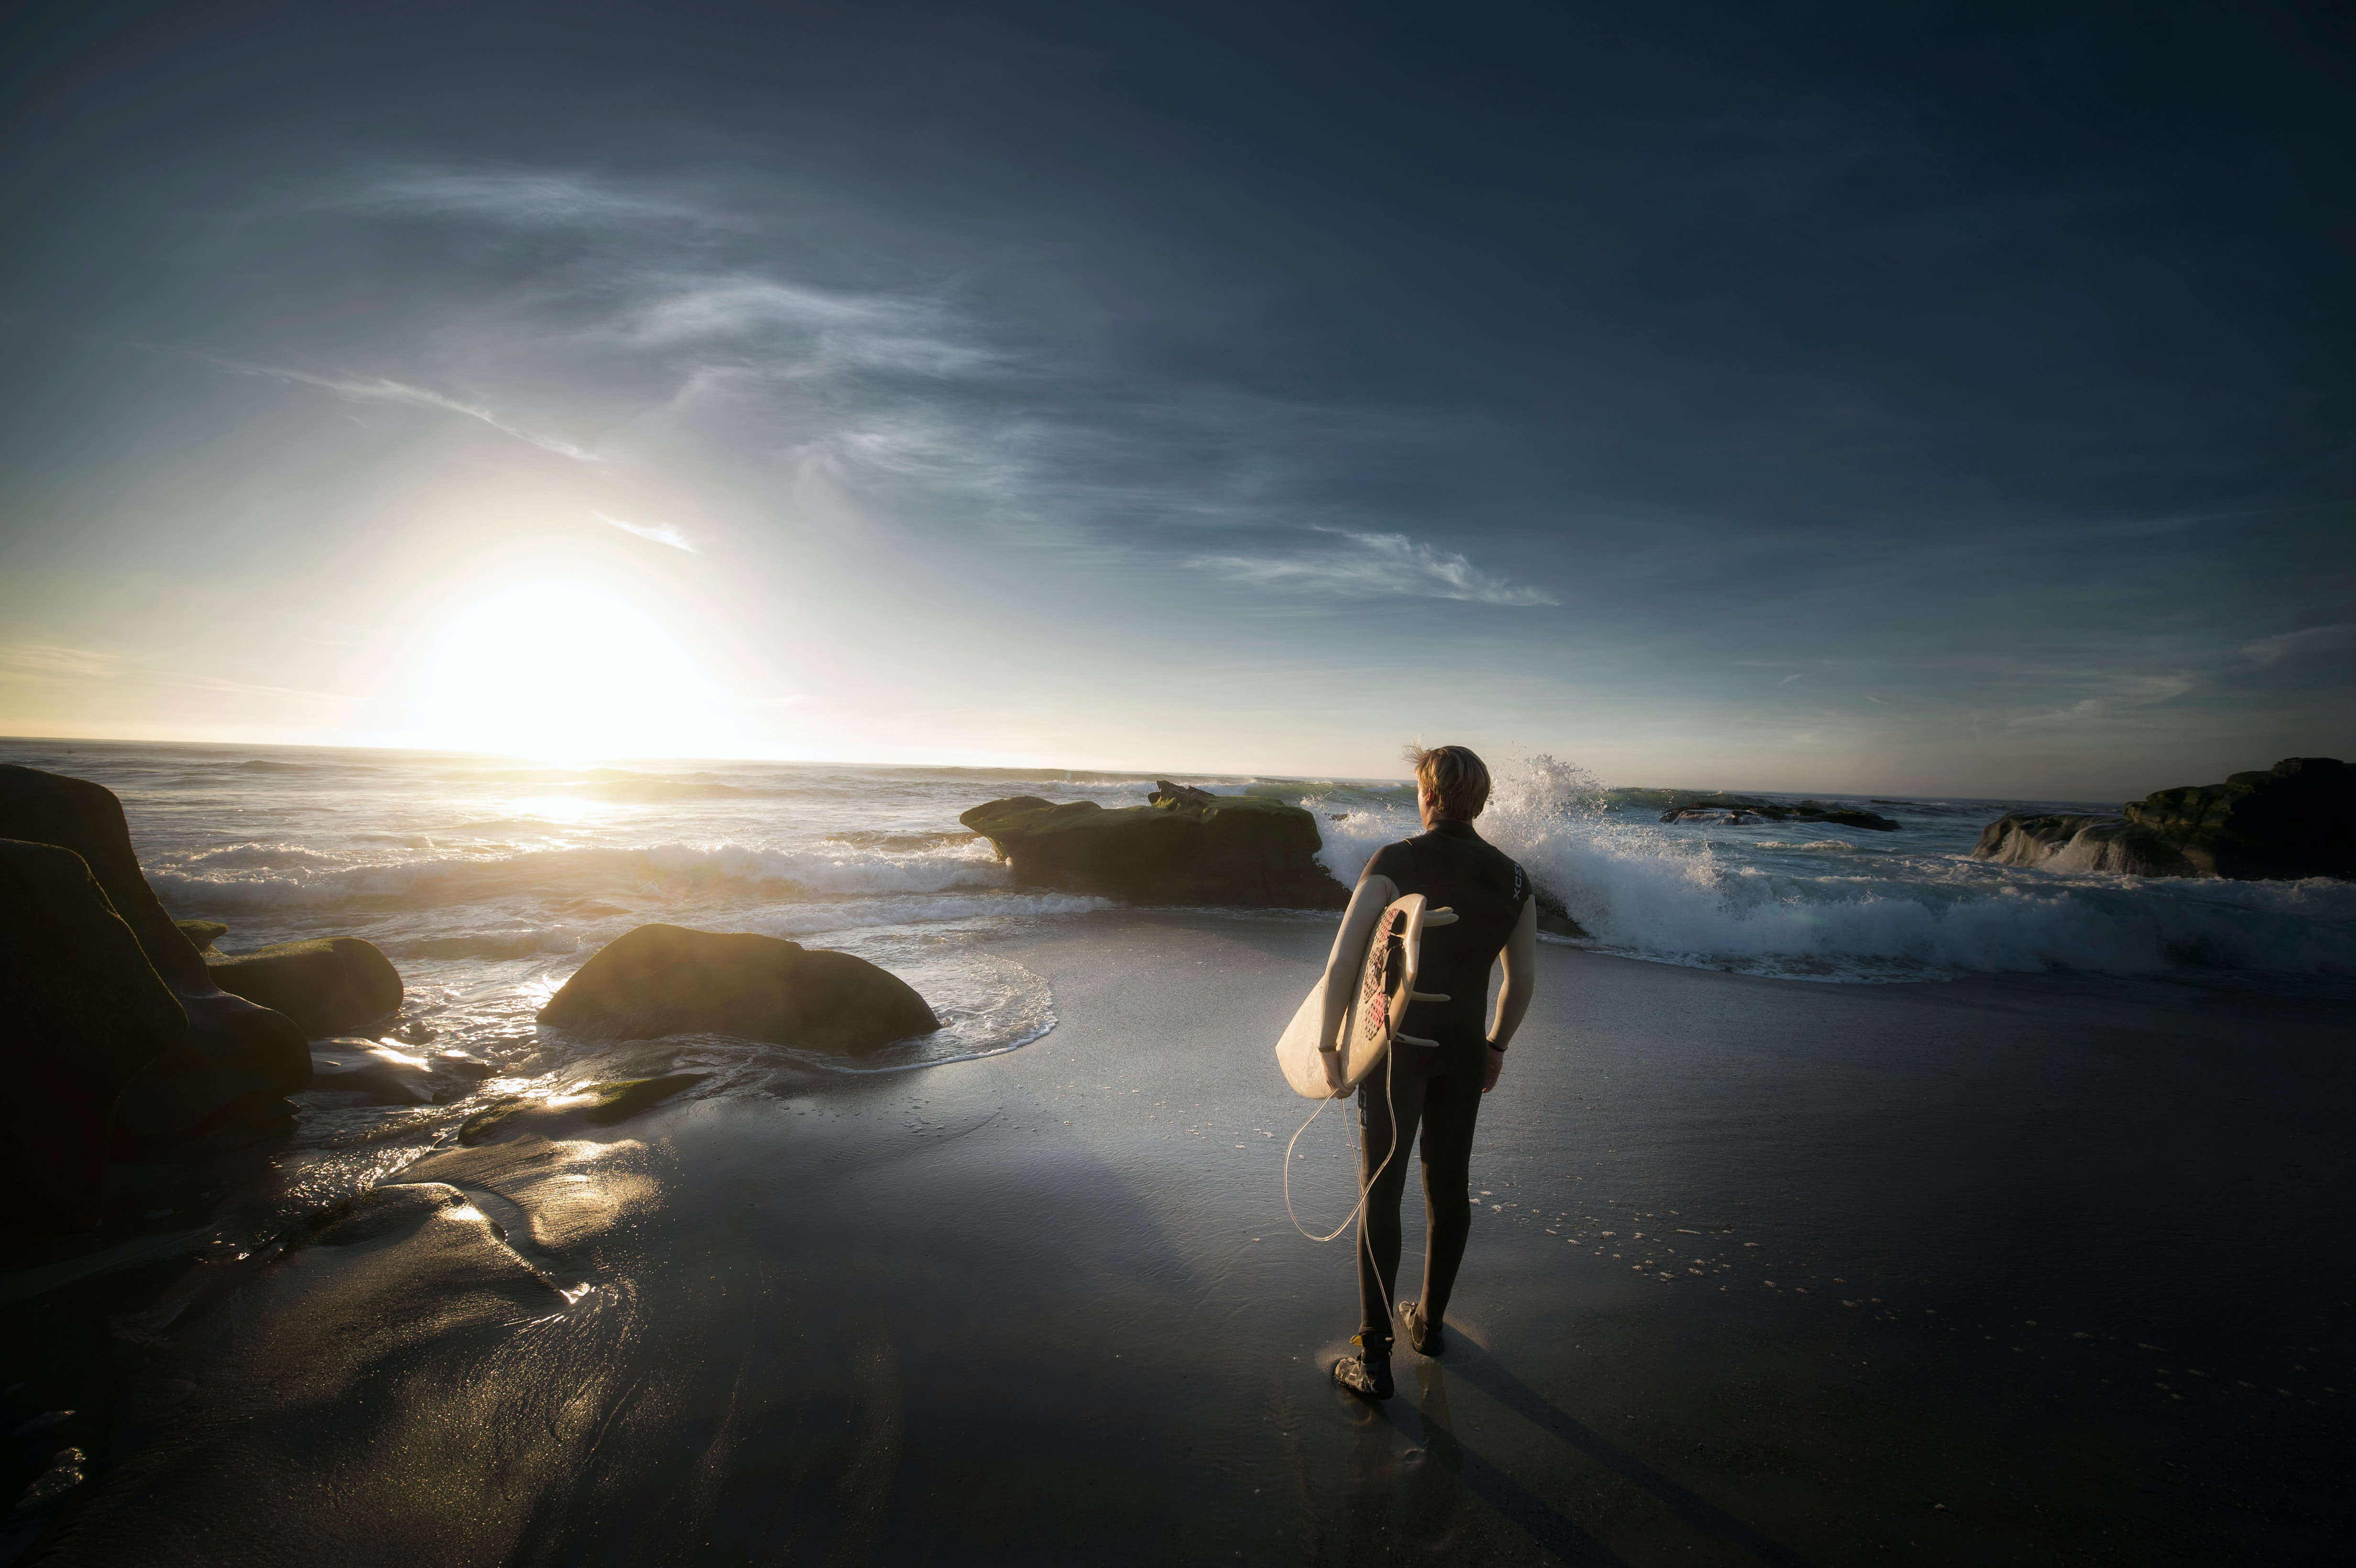 man standing carrying surfboard near seashore during daytime